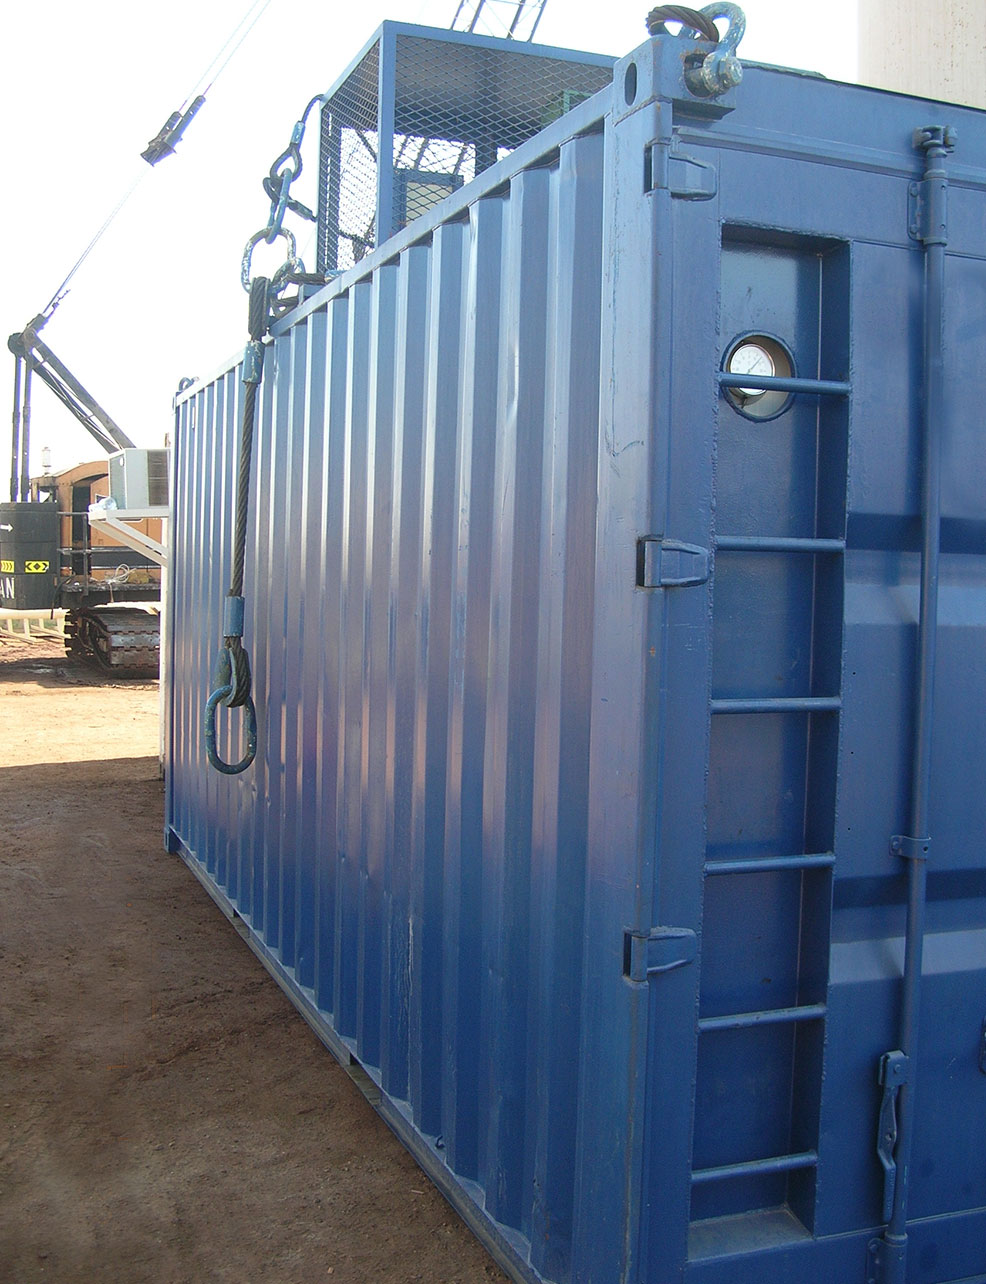 Refrigerated and specialised containers